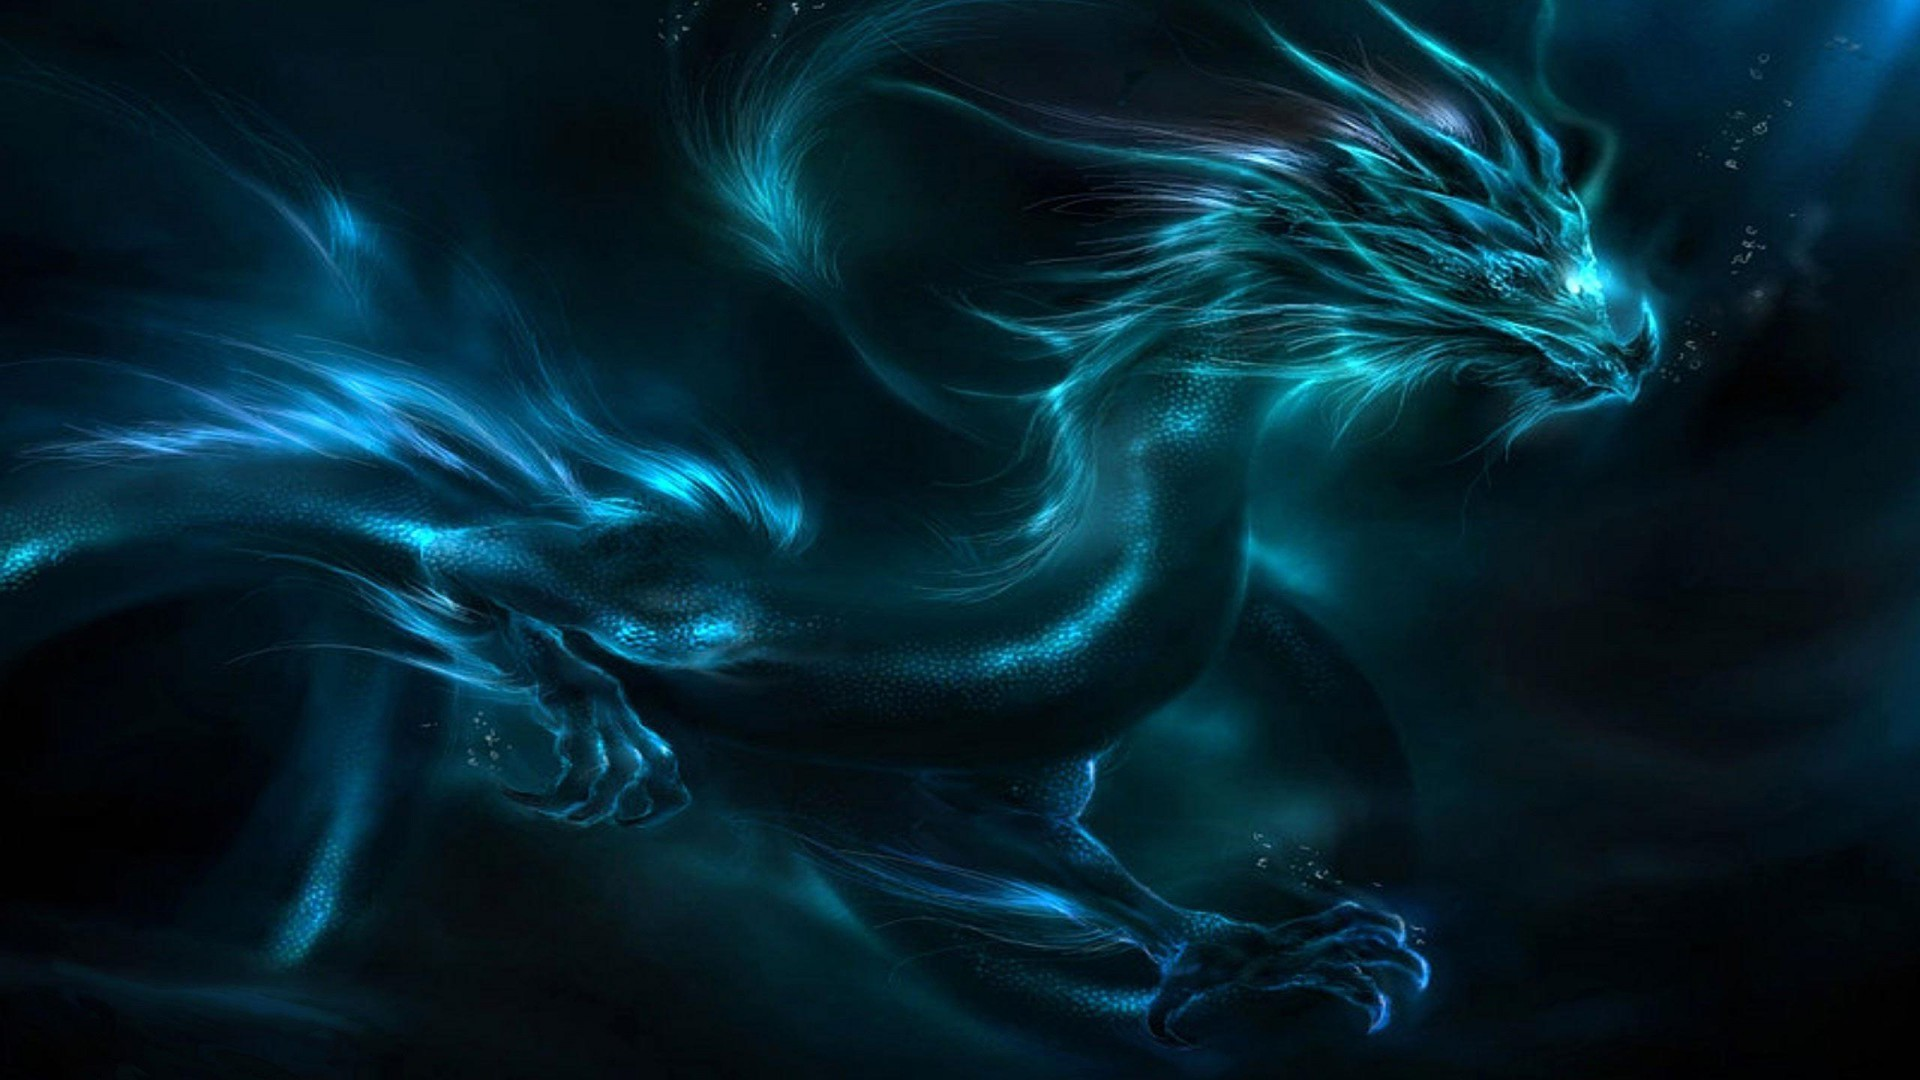 1920x1080 0 Dragon Wallpaper 1080p Dragon Wallpapers Best Wallpapers